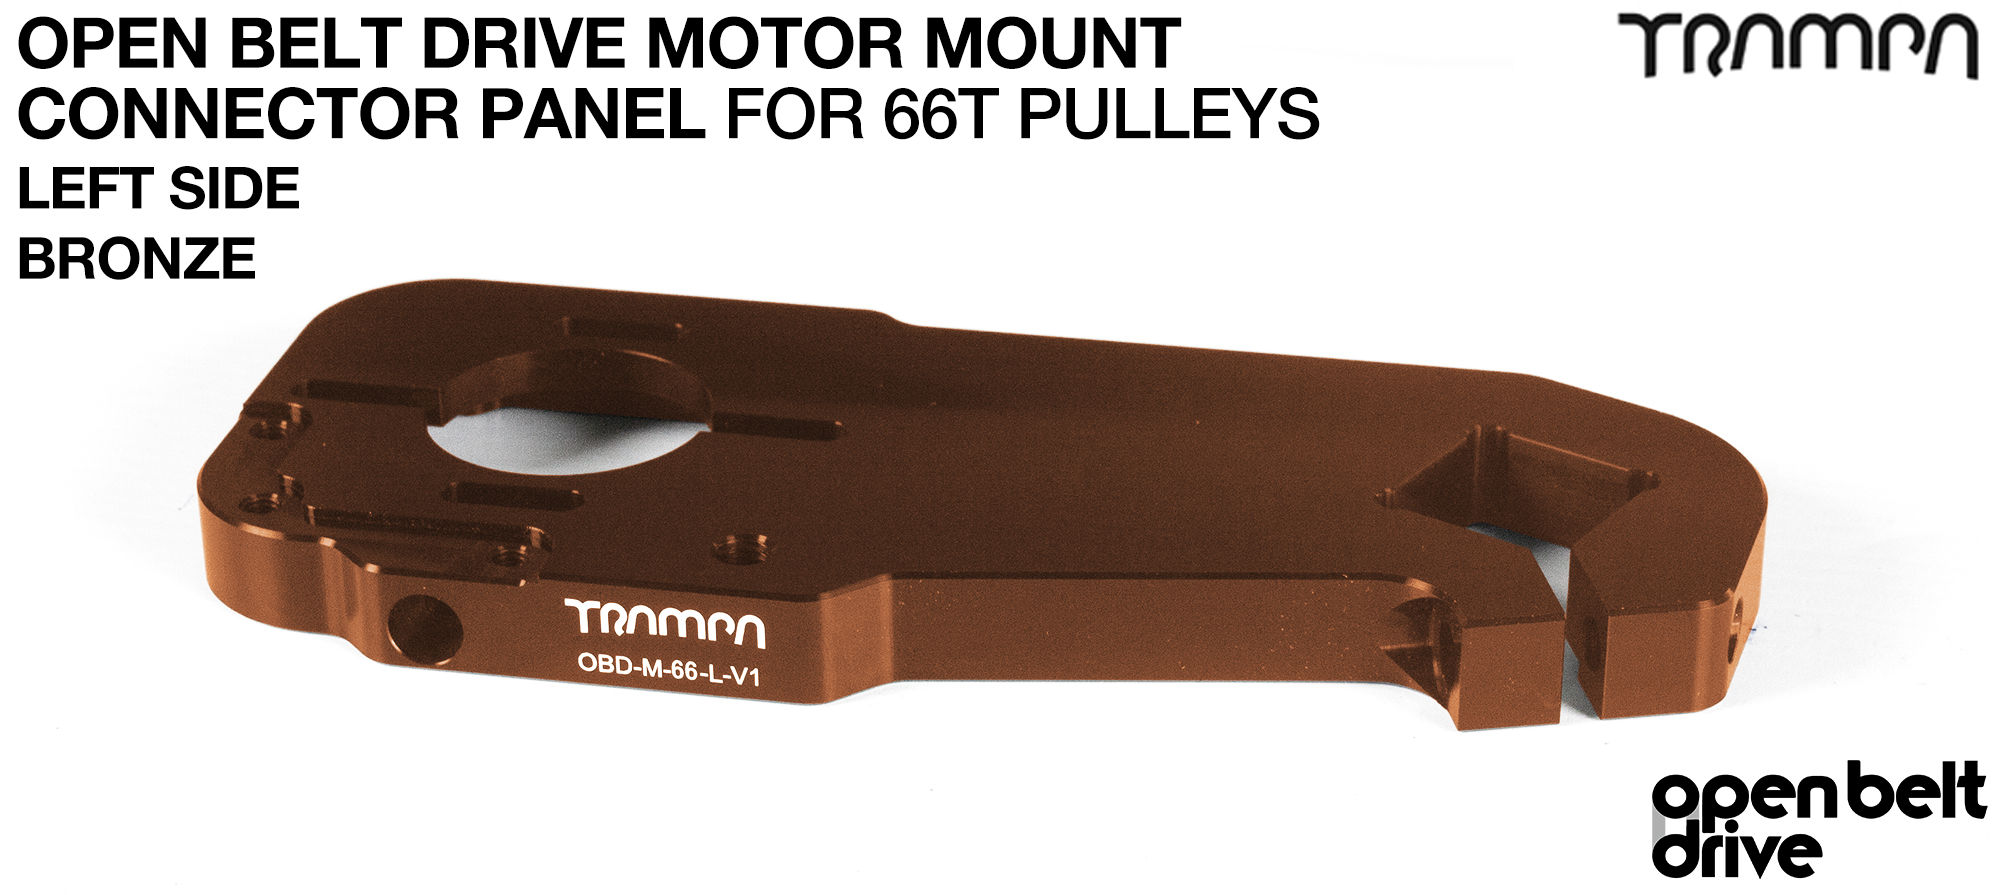 BRONZE 66T TWIN OBD Motor Mount Panels